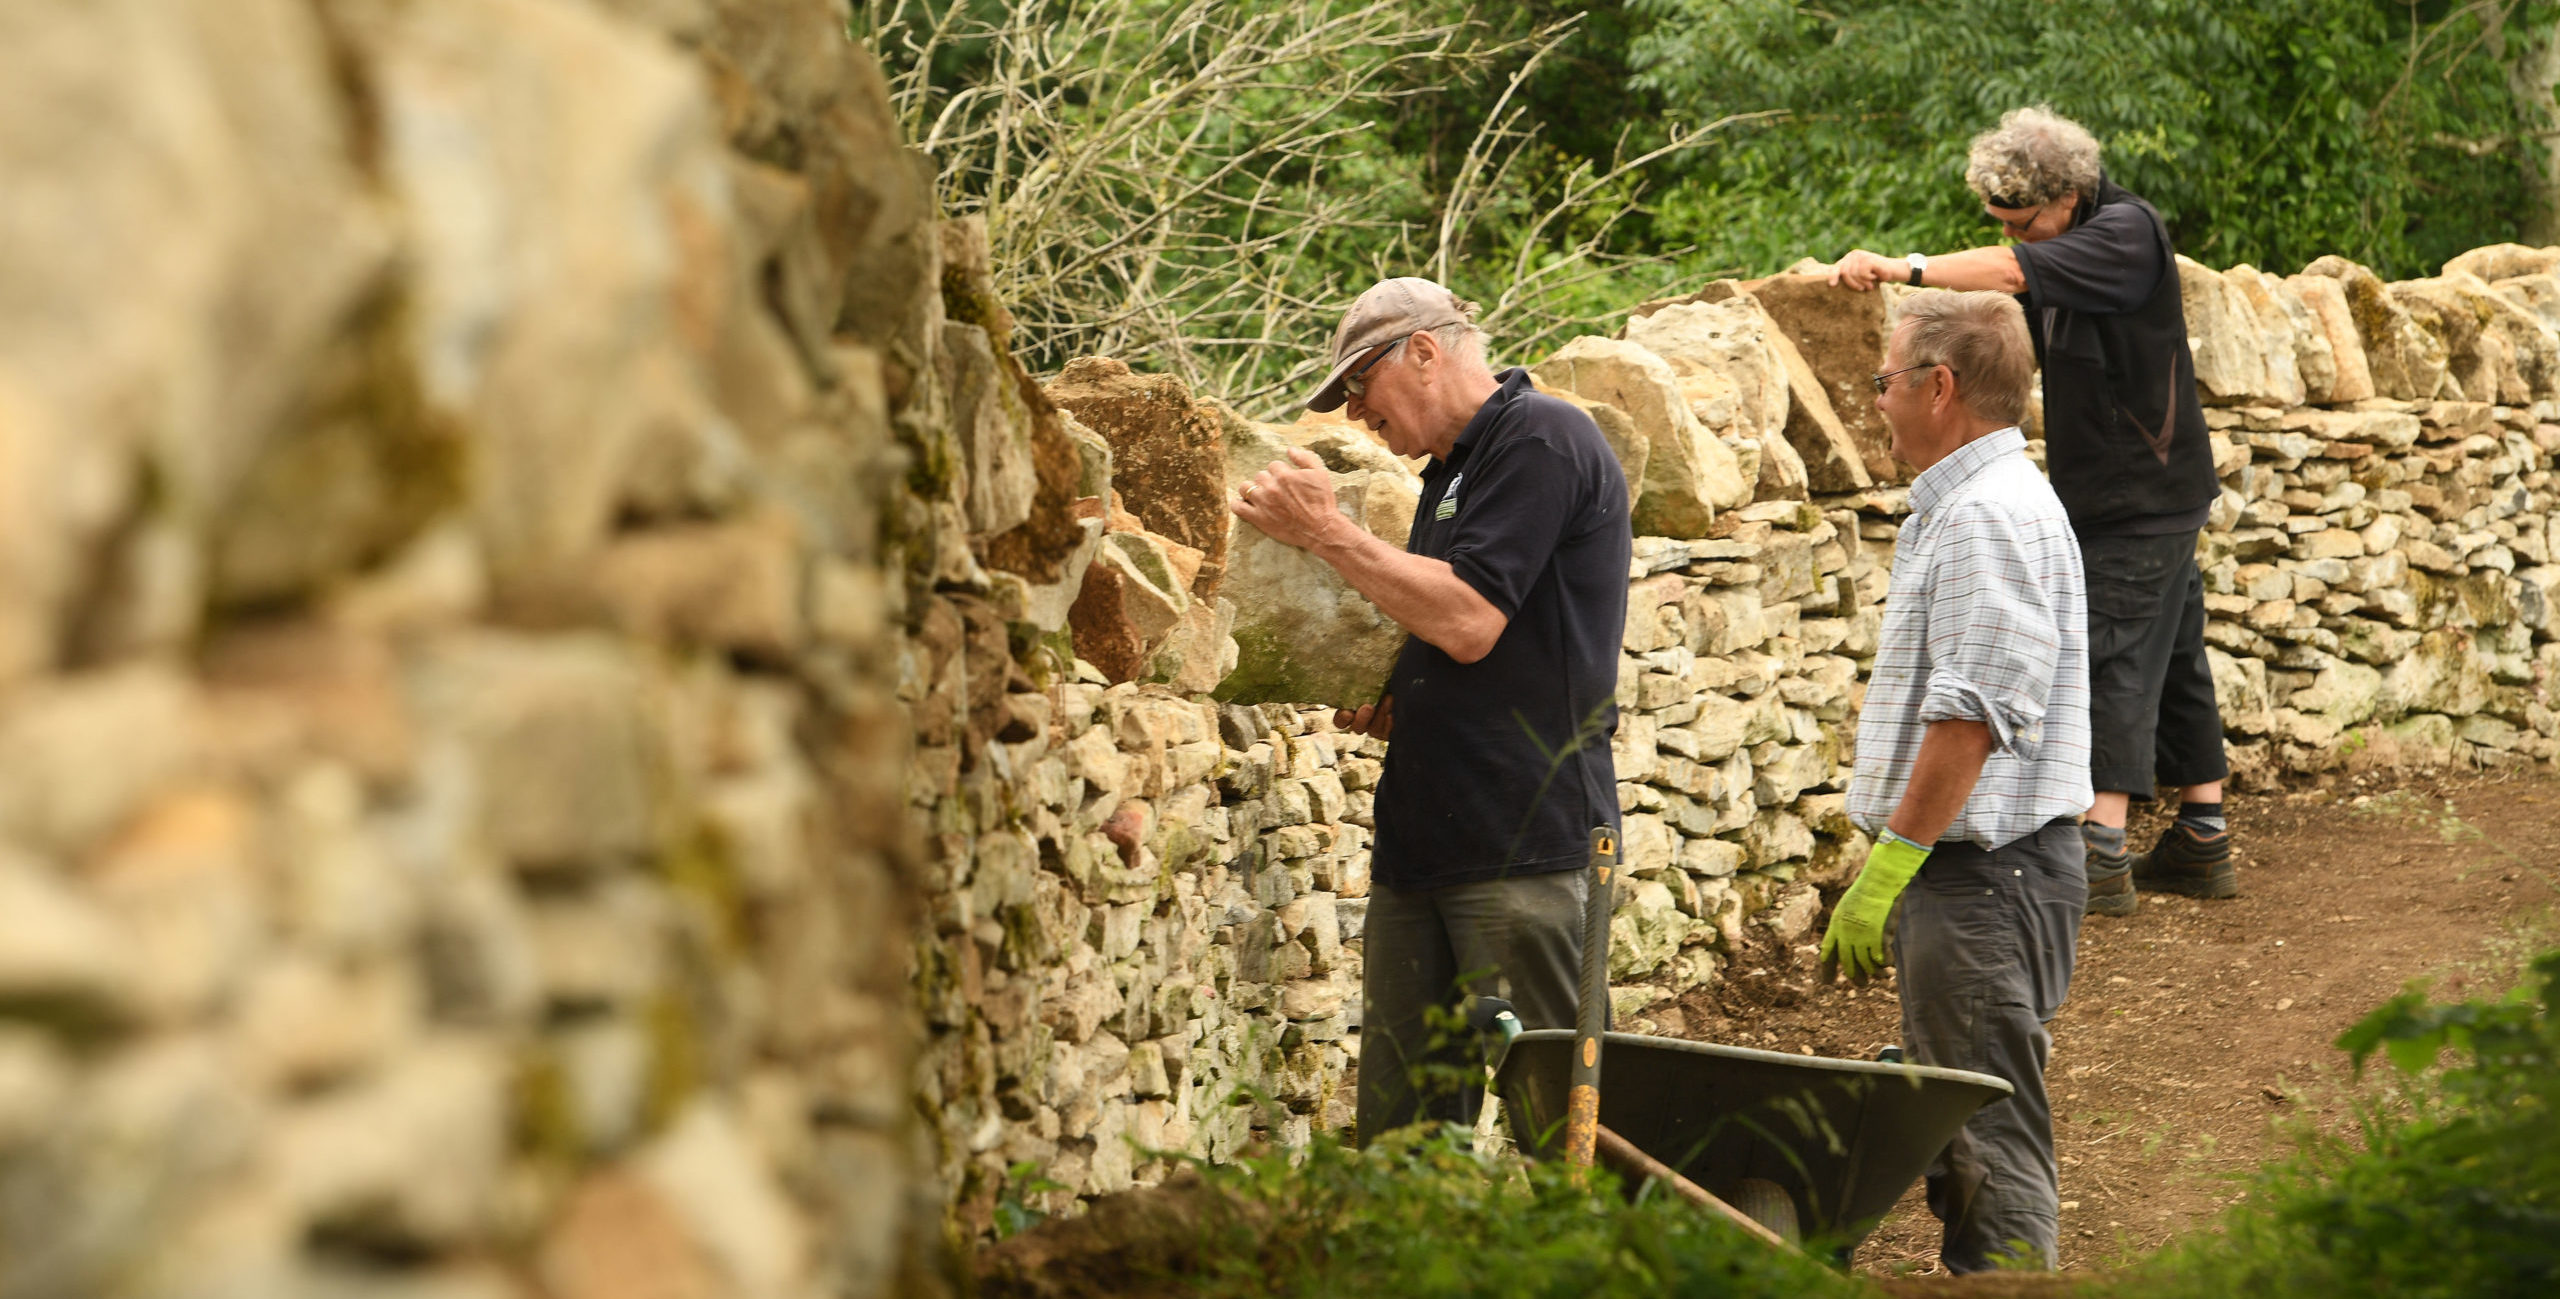 A group of people helping to repair a dry stone wall together.